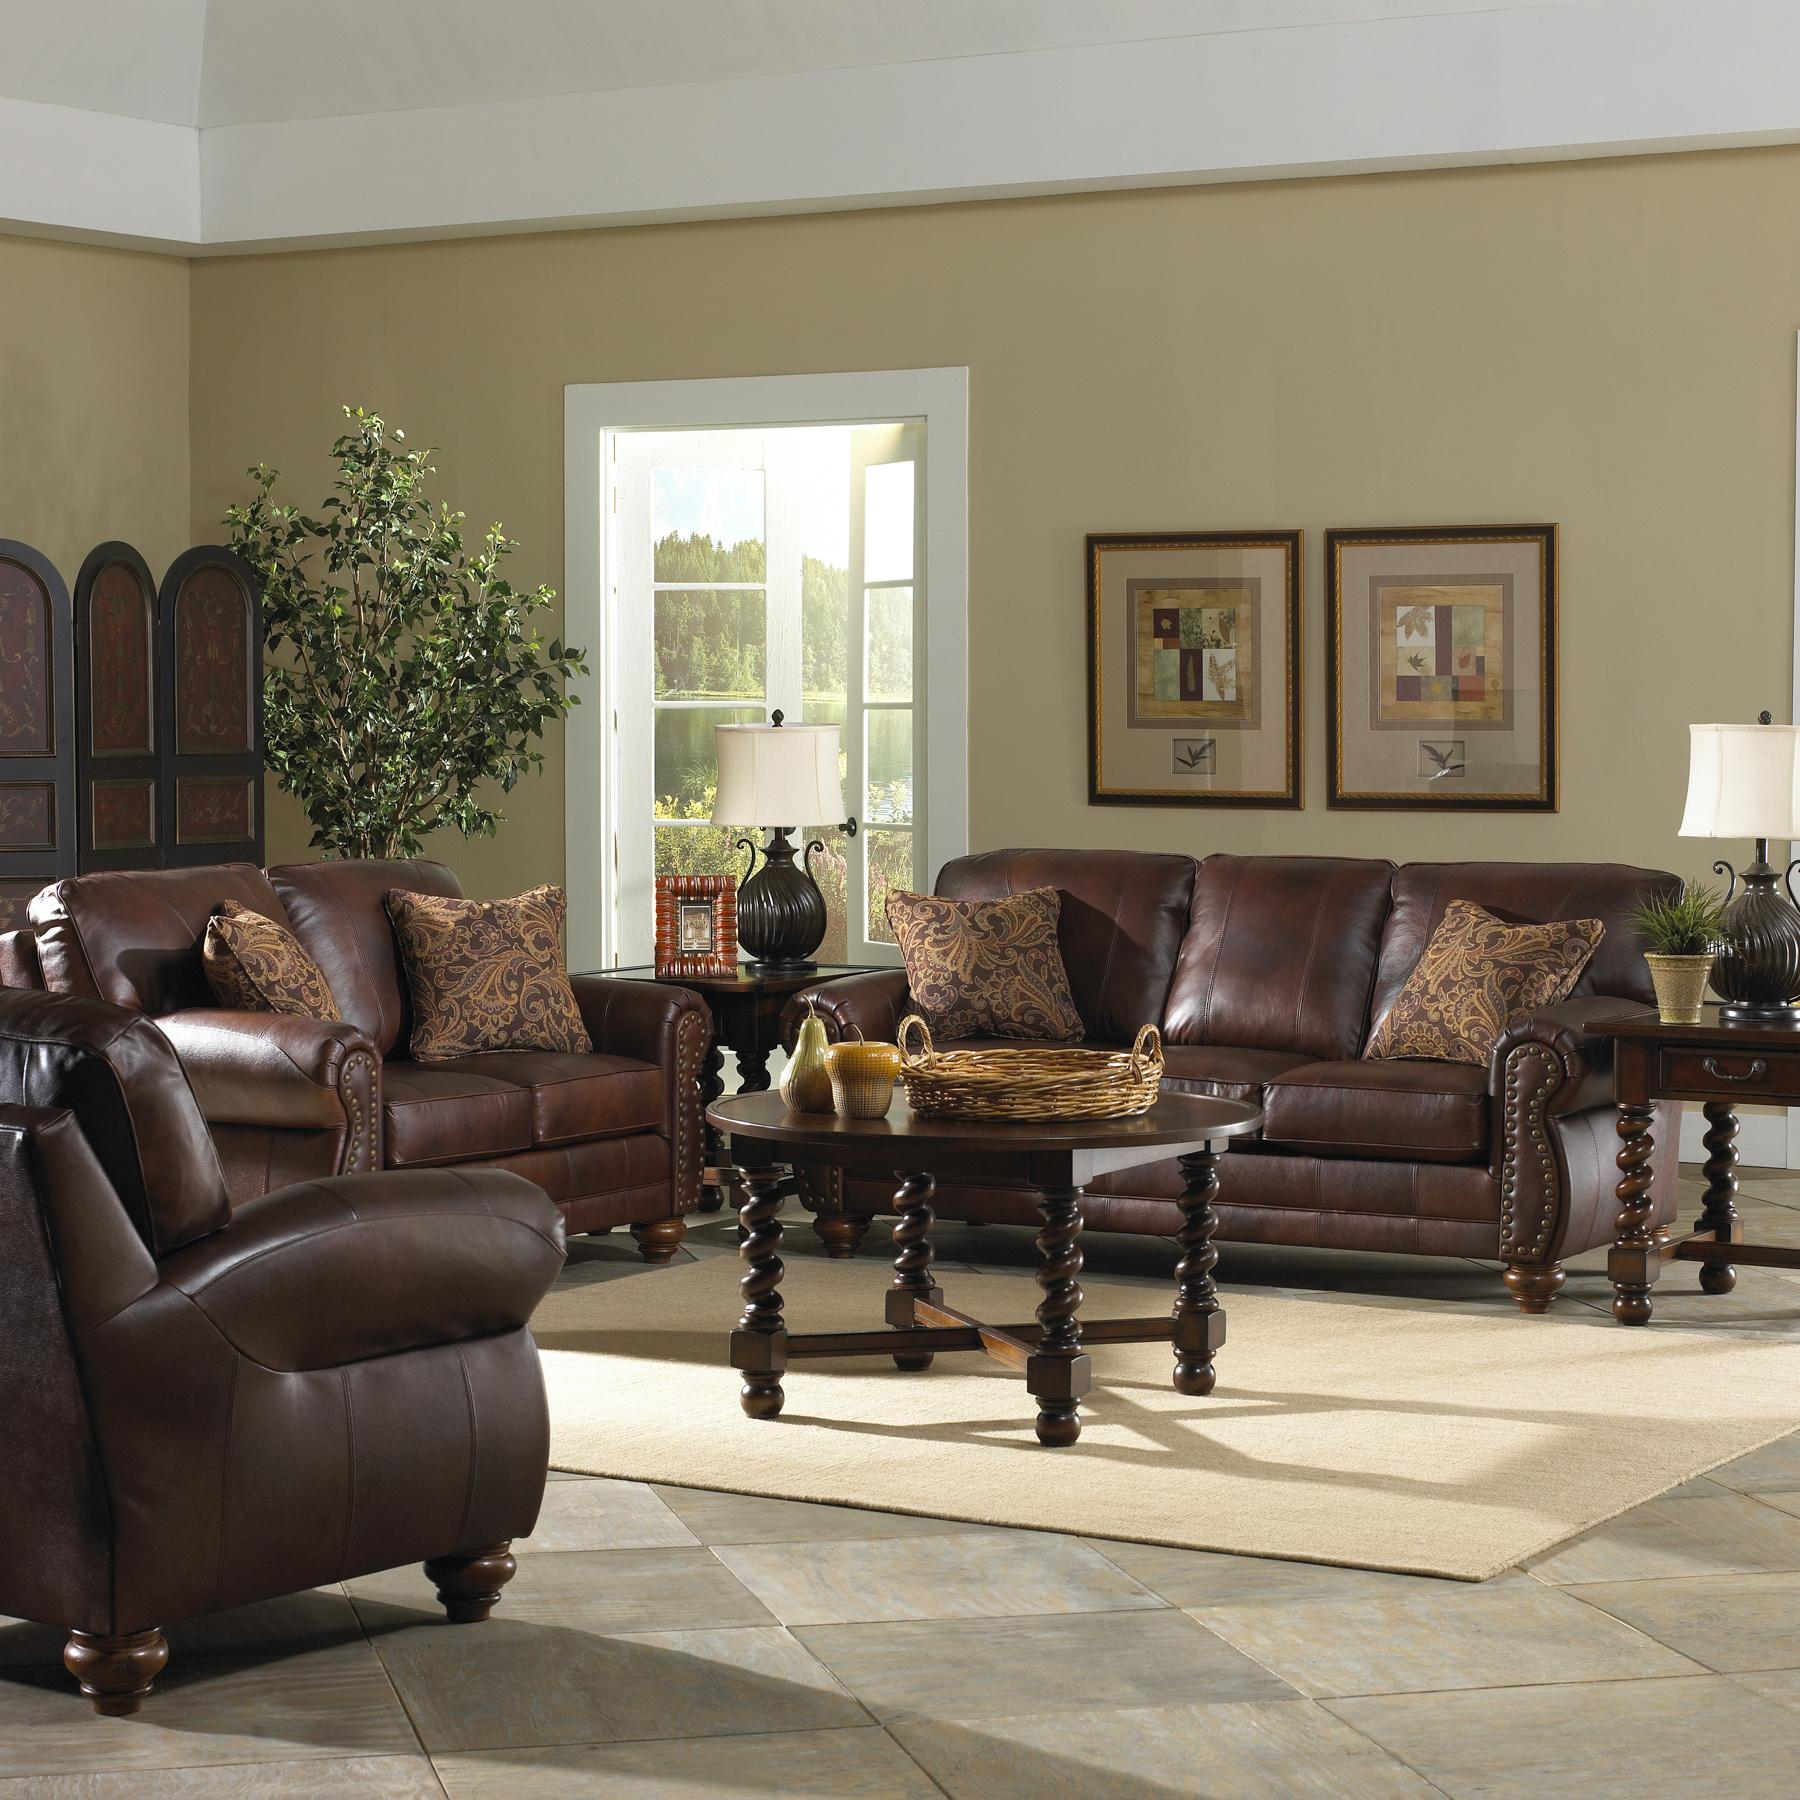 Bullard Furniture | North Carolina Furniture Sales | Furniture for Sale in Fayetteville Nc